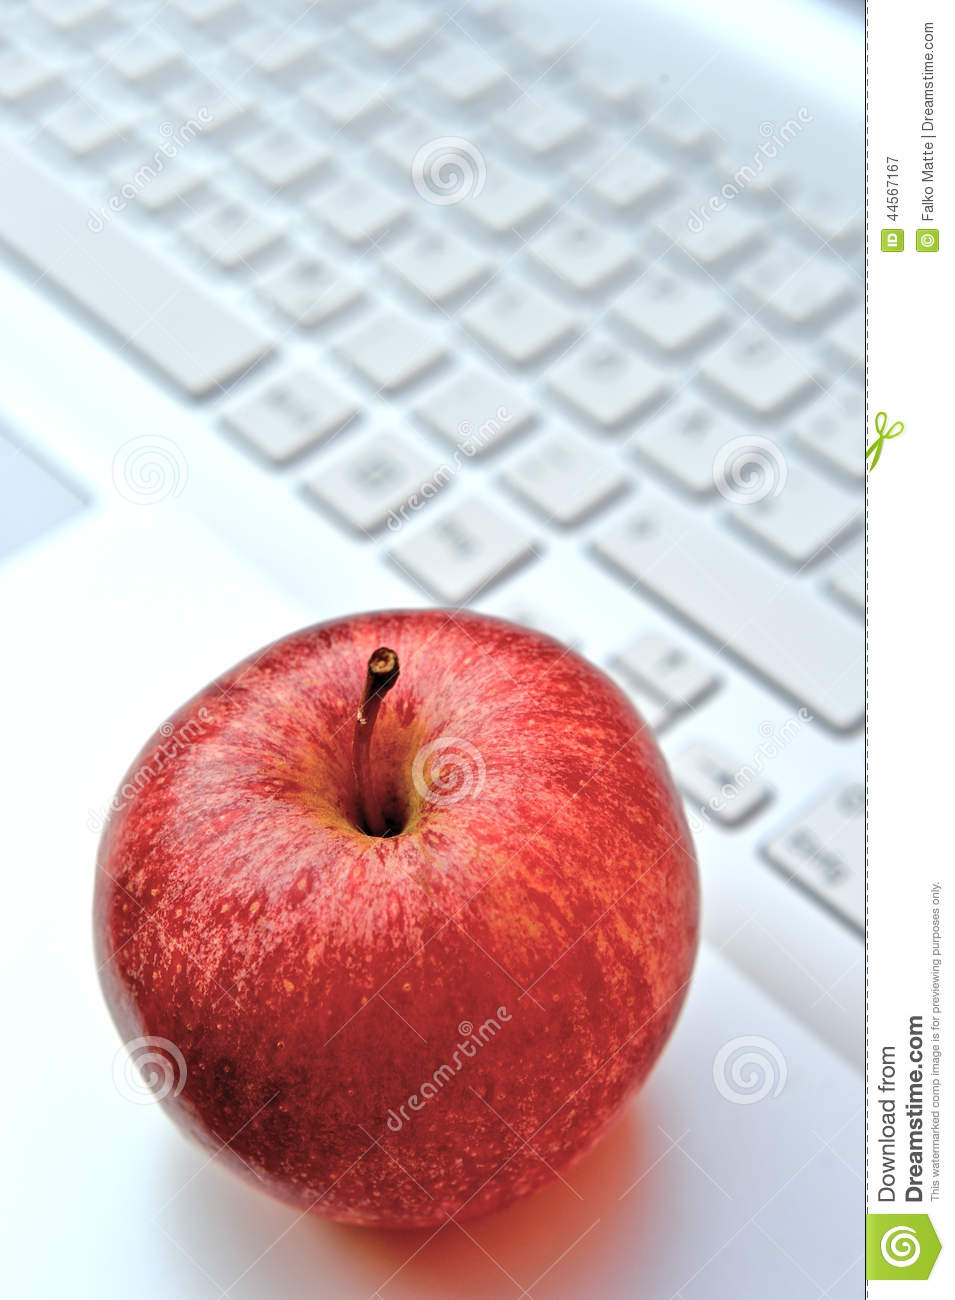 Apple no teclado